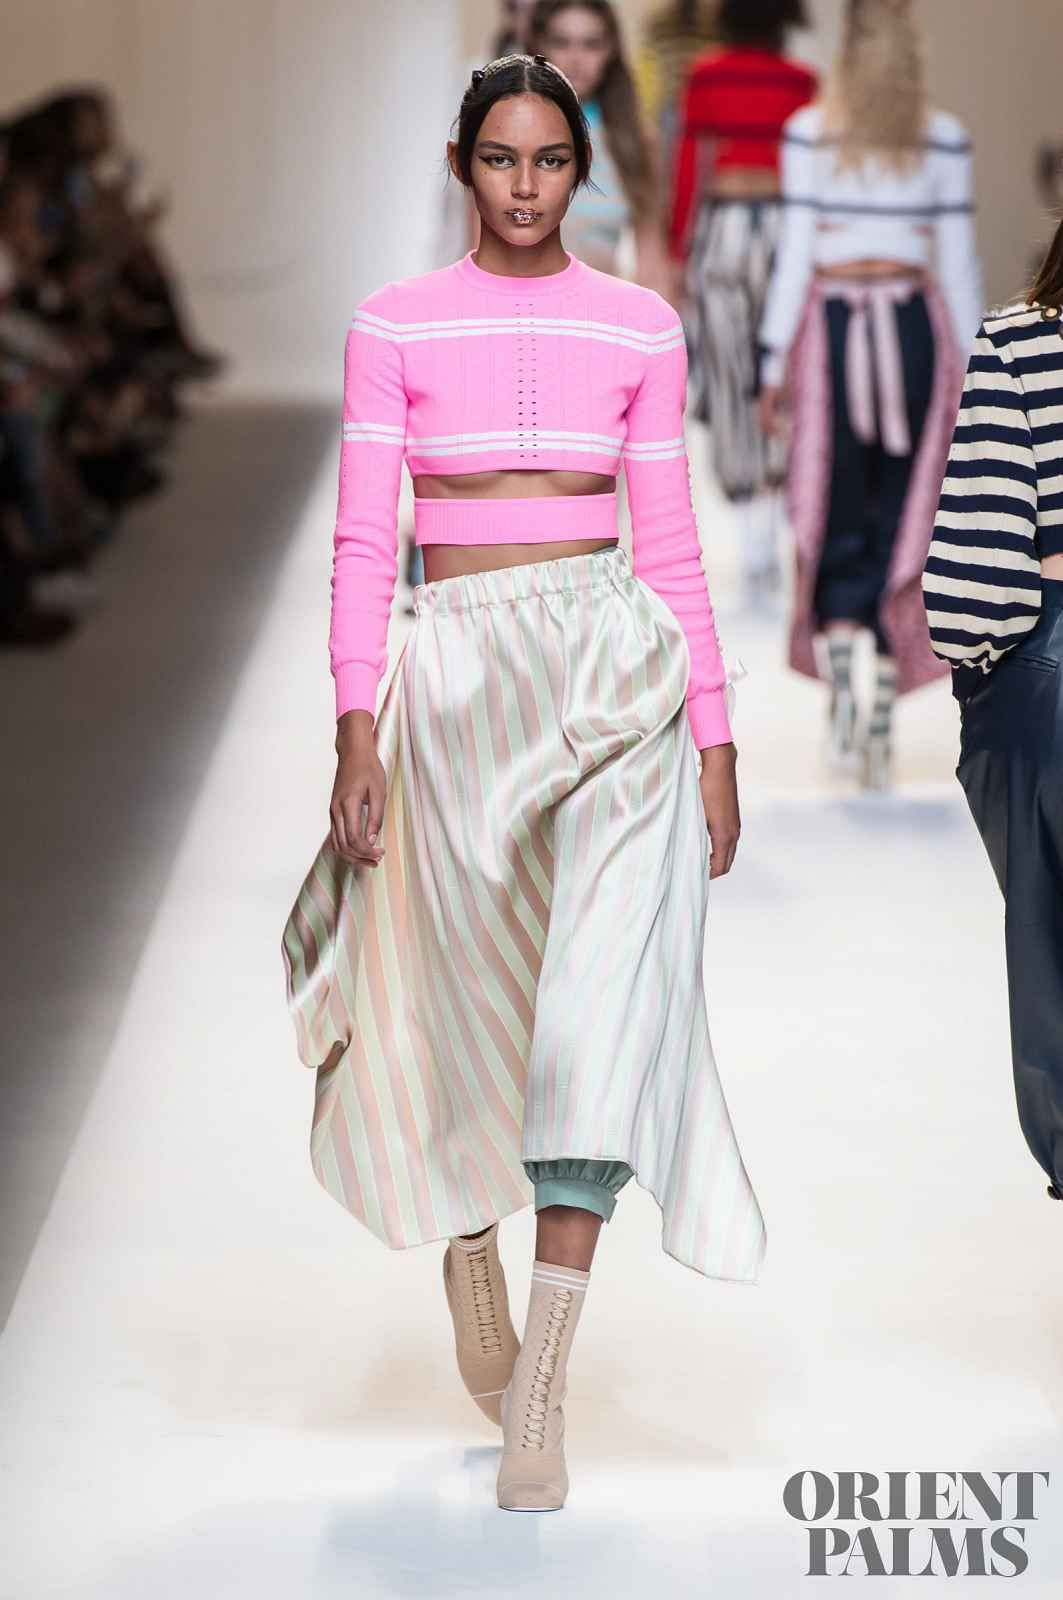 Fendi – 59 photos - the complete collection